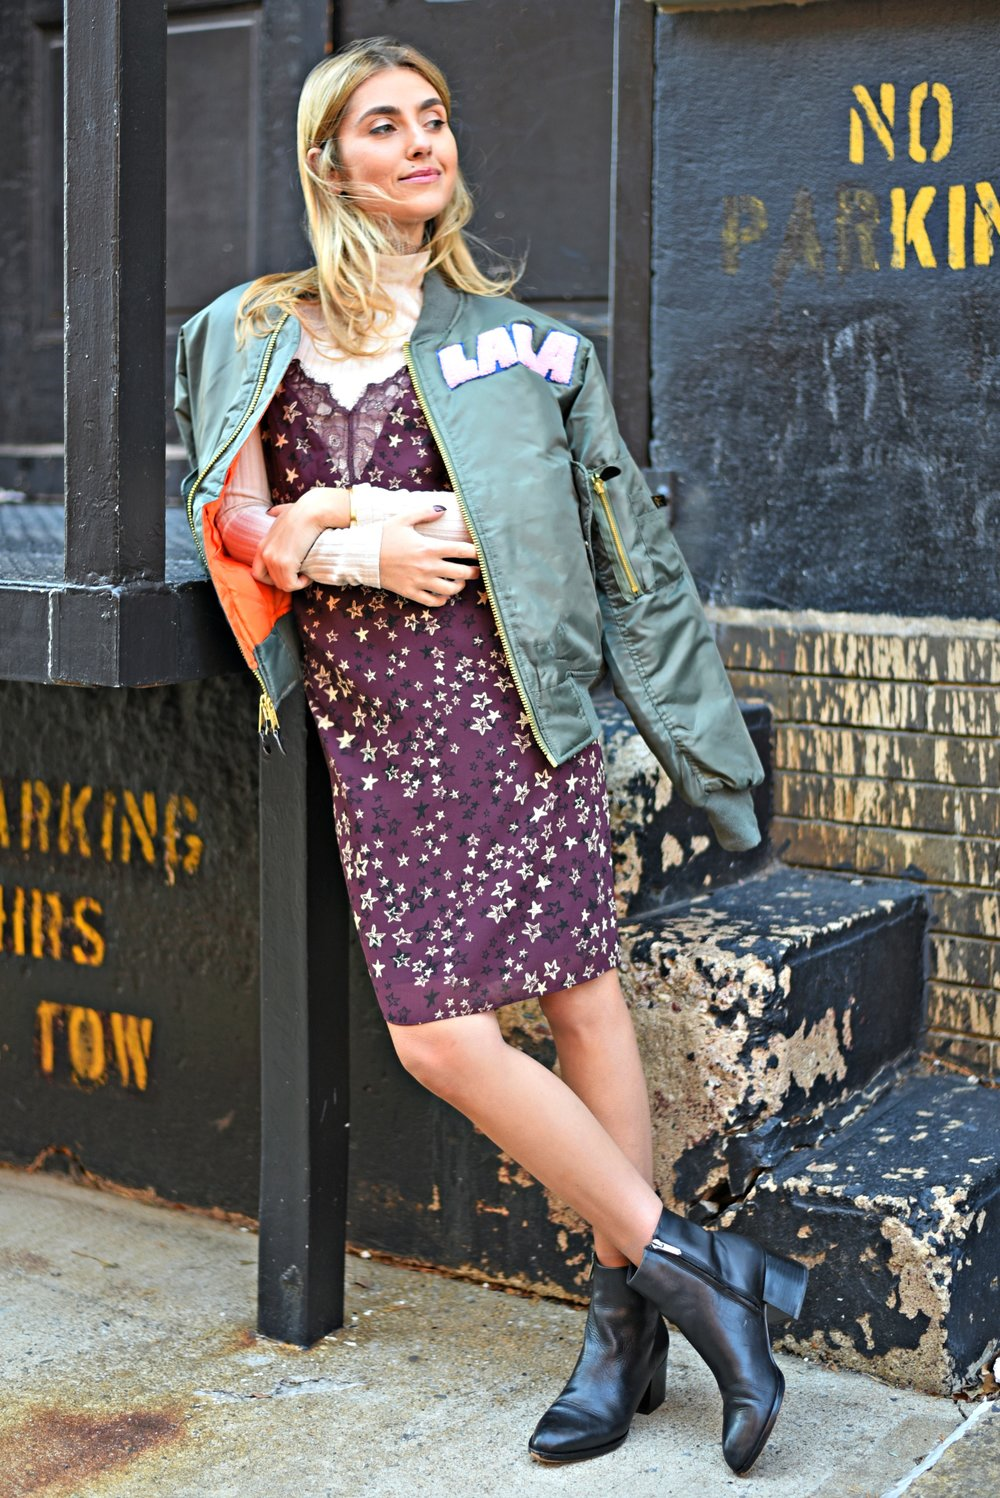 CHARLOTTE BICKLEY YIN 2MY YANG SISTER FASHION BLOGGERS NYC UNEMPLOYED DENIM PERSONALIZED BOMBER JACKET POST 9.jpg